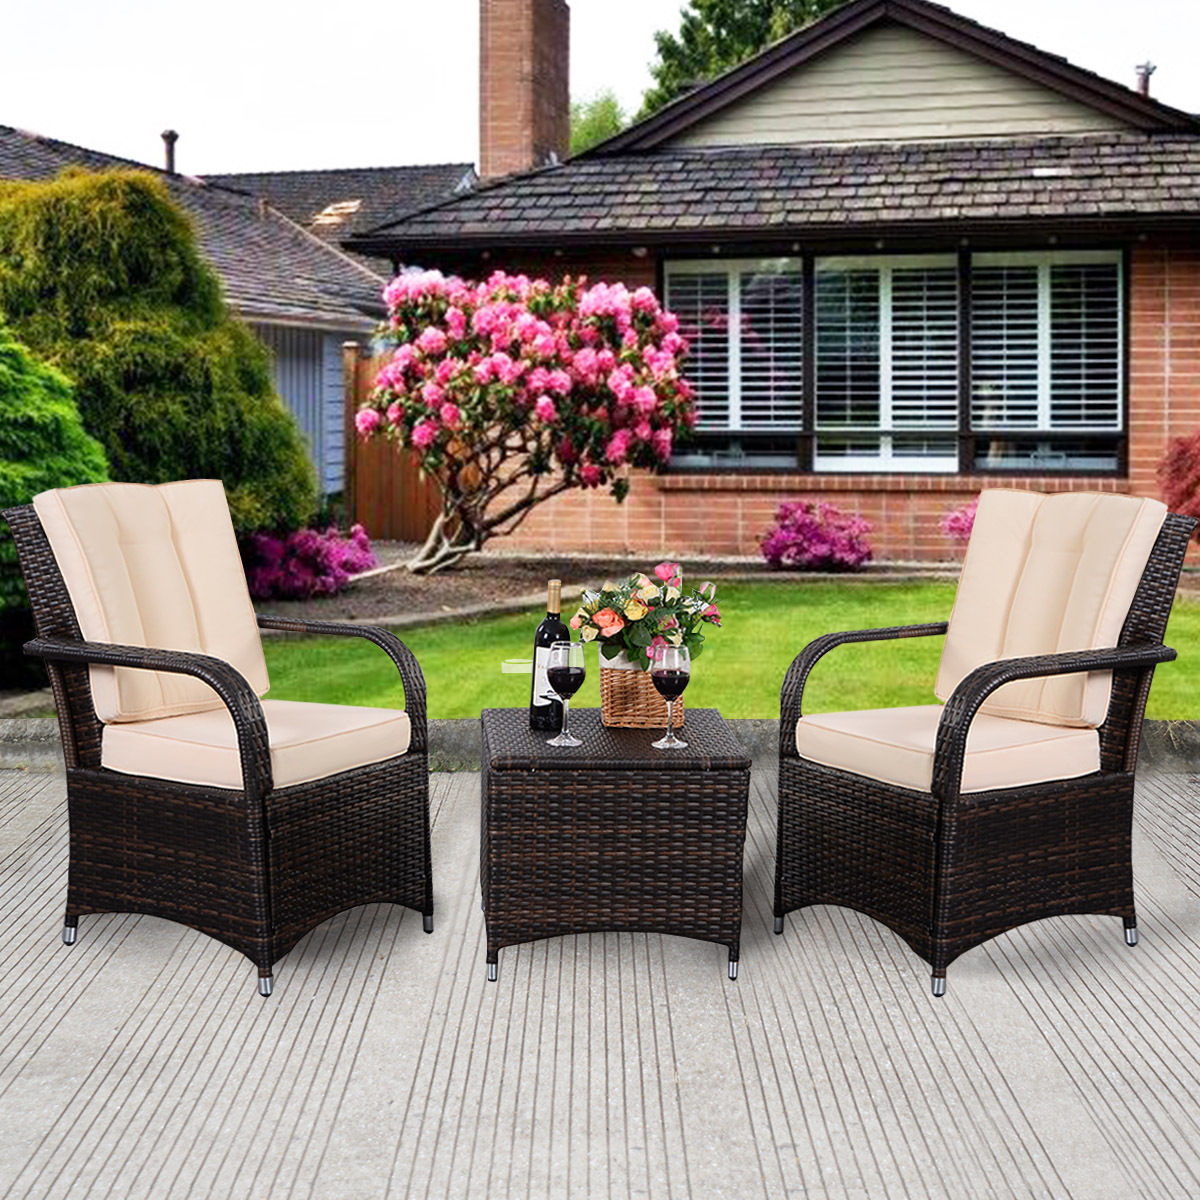 costway 3 pcs outdoor patio pe rattan wicker furniture set seat cushioned mix brown